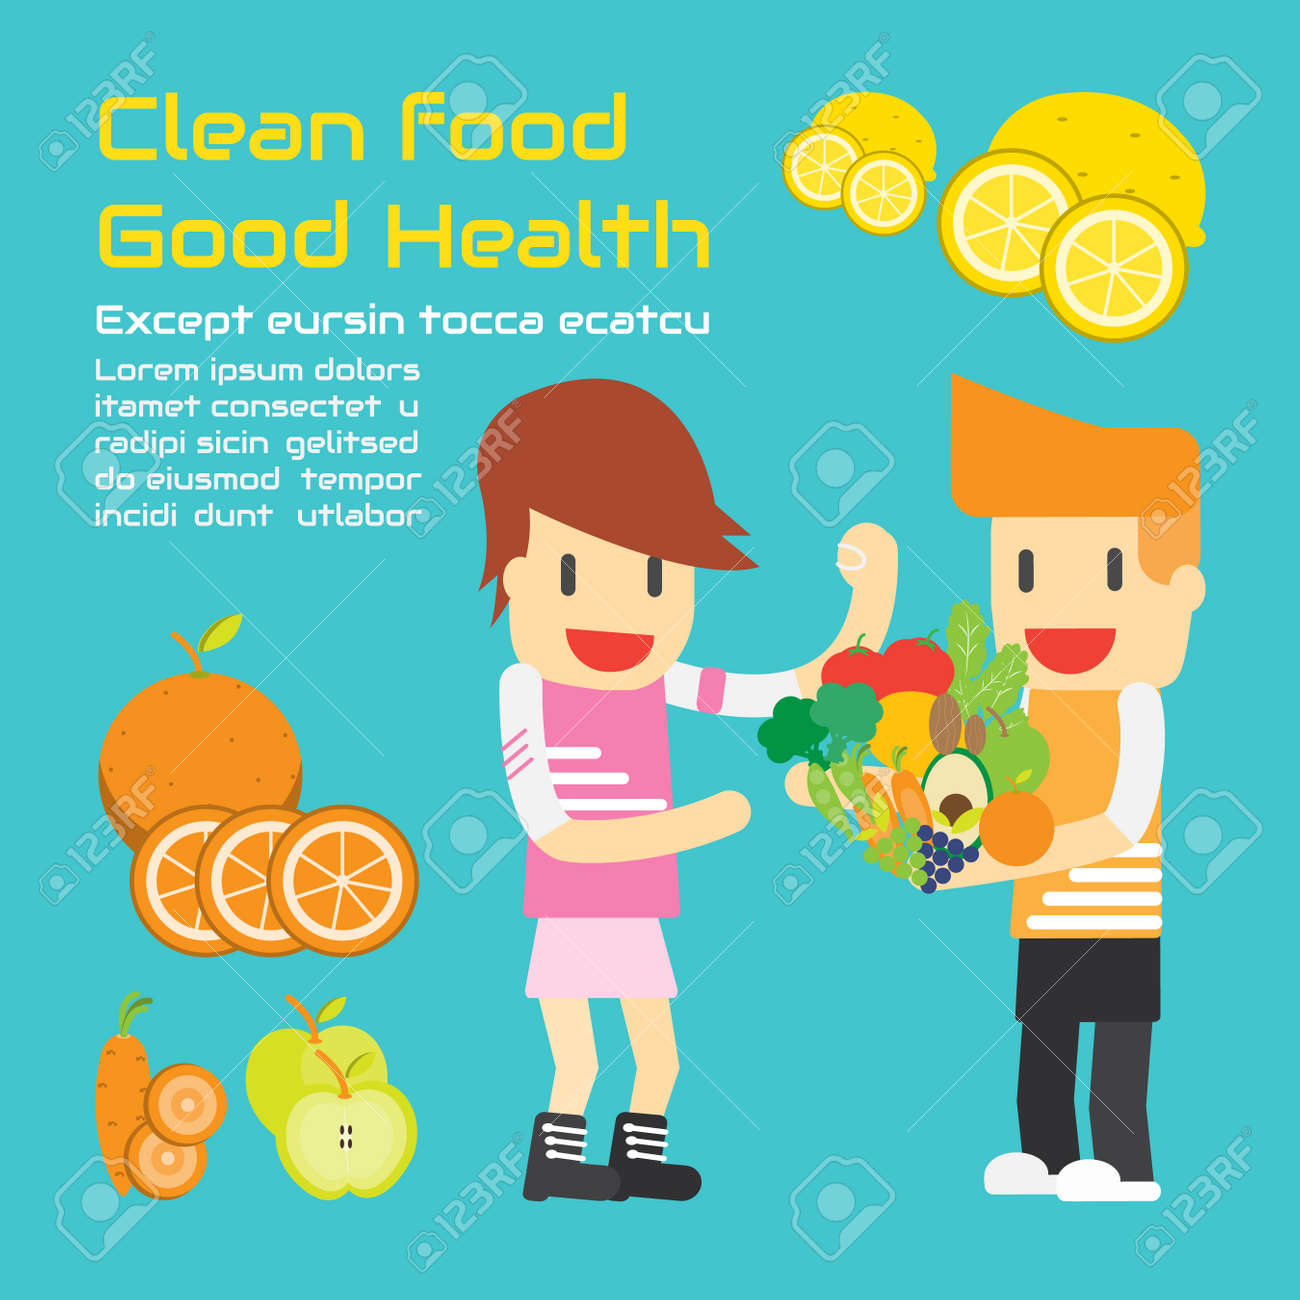 Food and good health - Clean Food Good Health Vector Cartoon Business Stock Vector 30560967